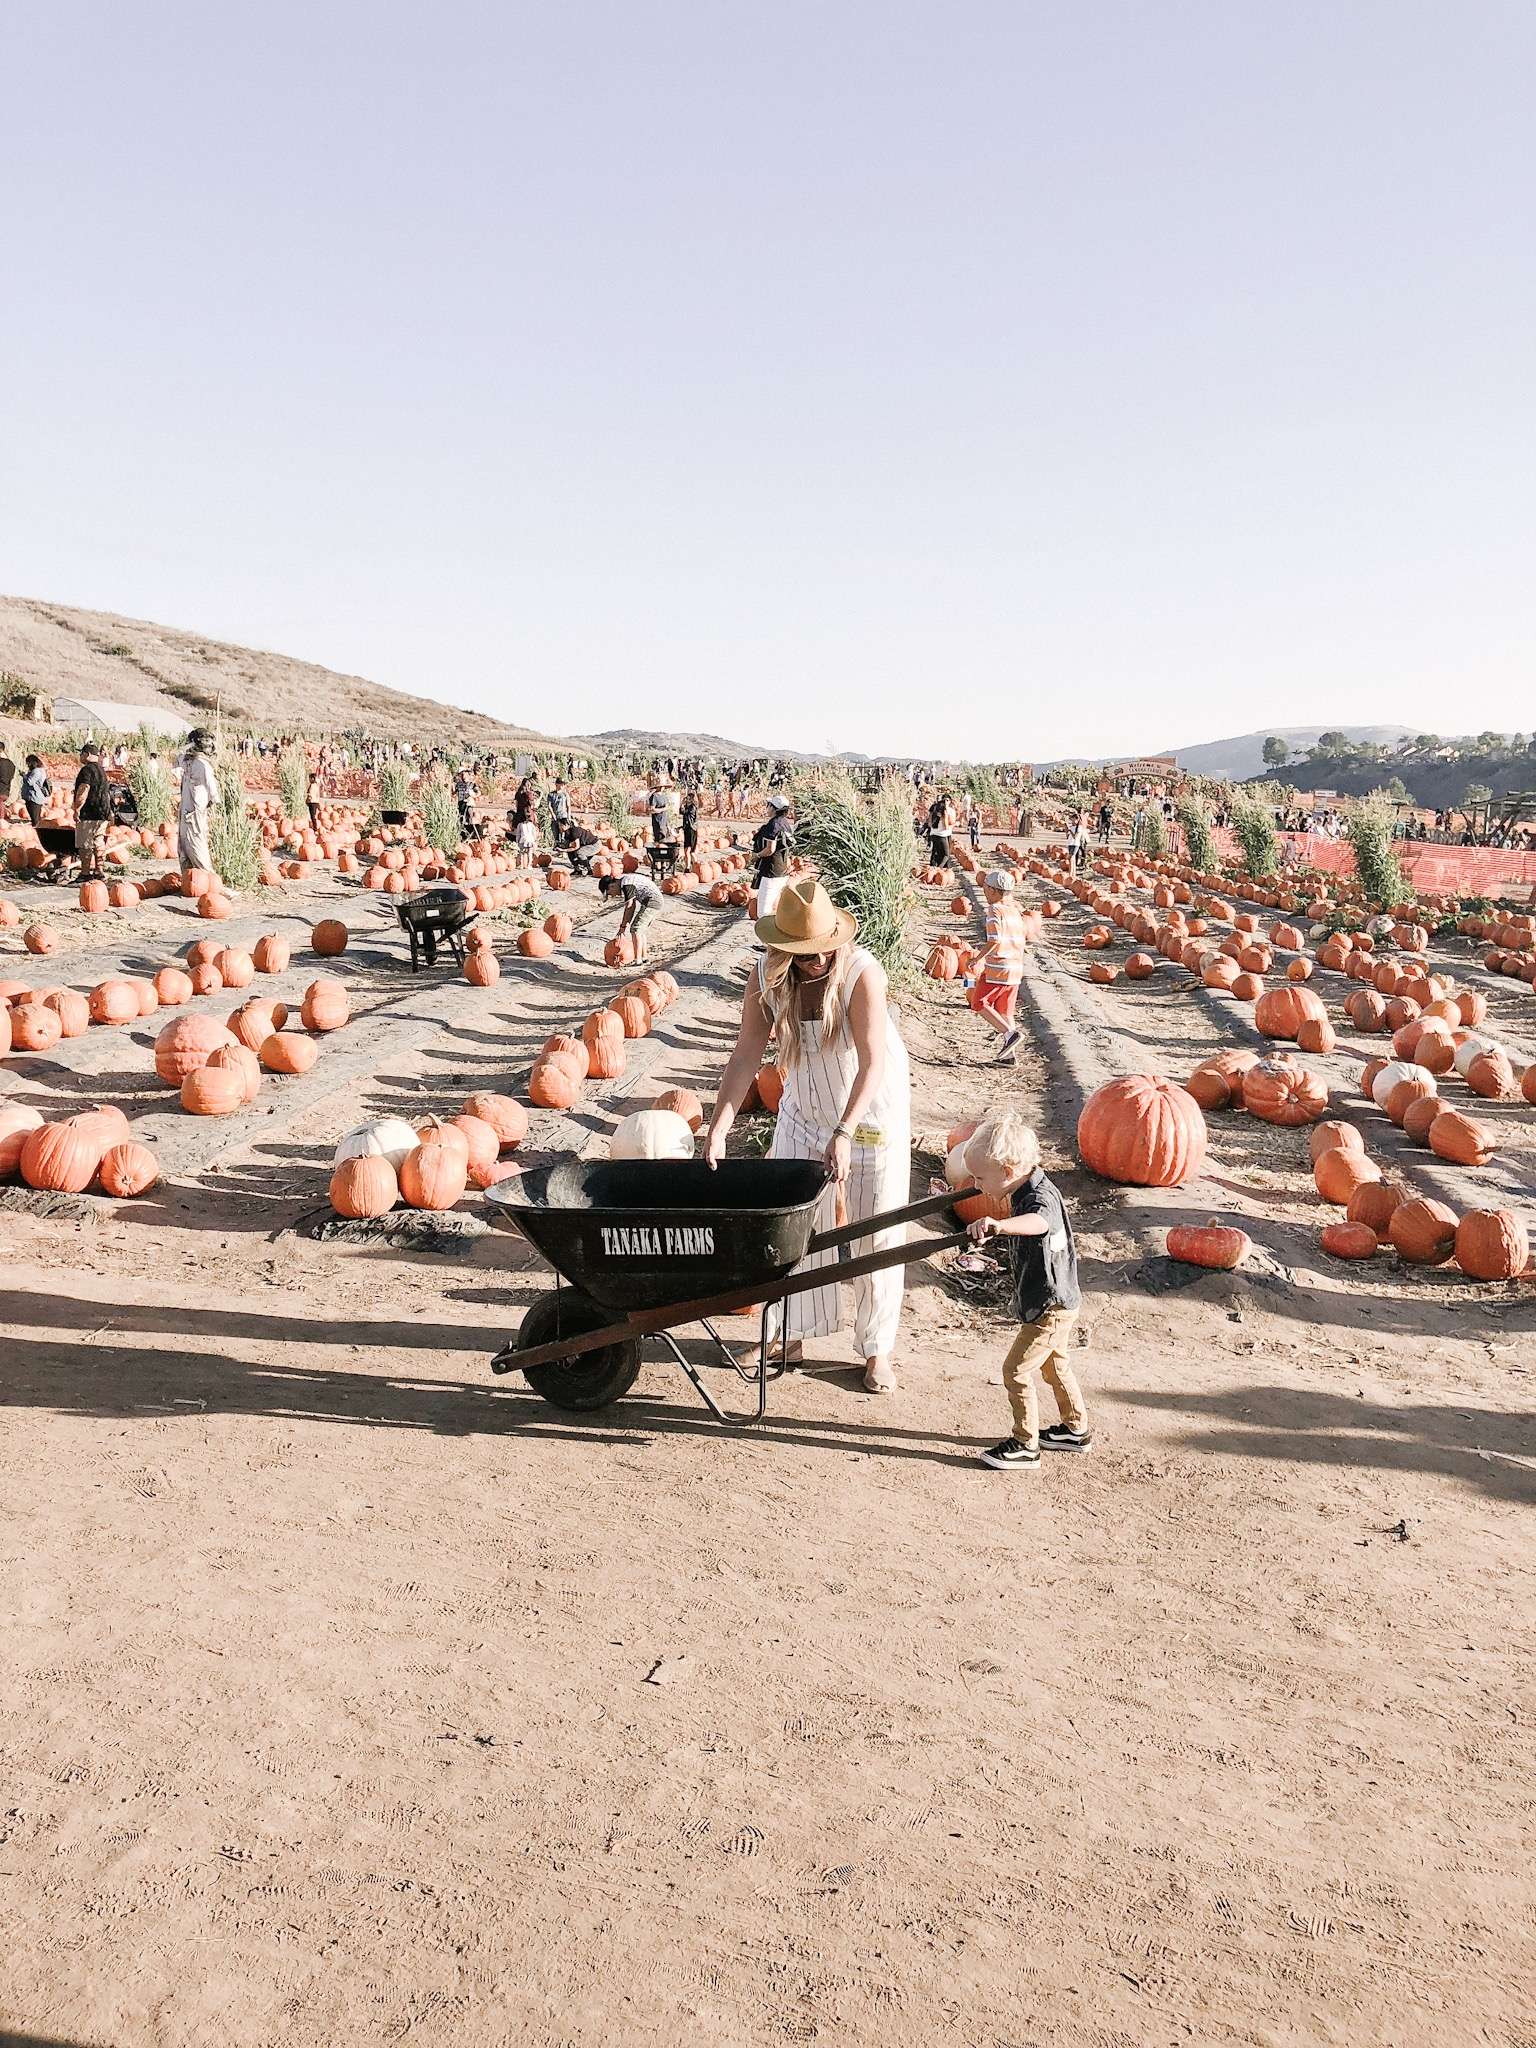 tanaka farms pumpkin patch wheelbarrow.JPG